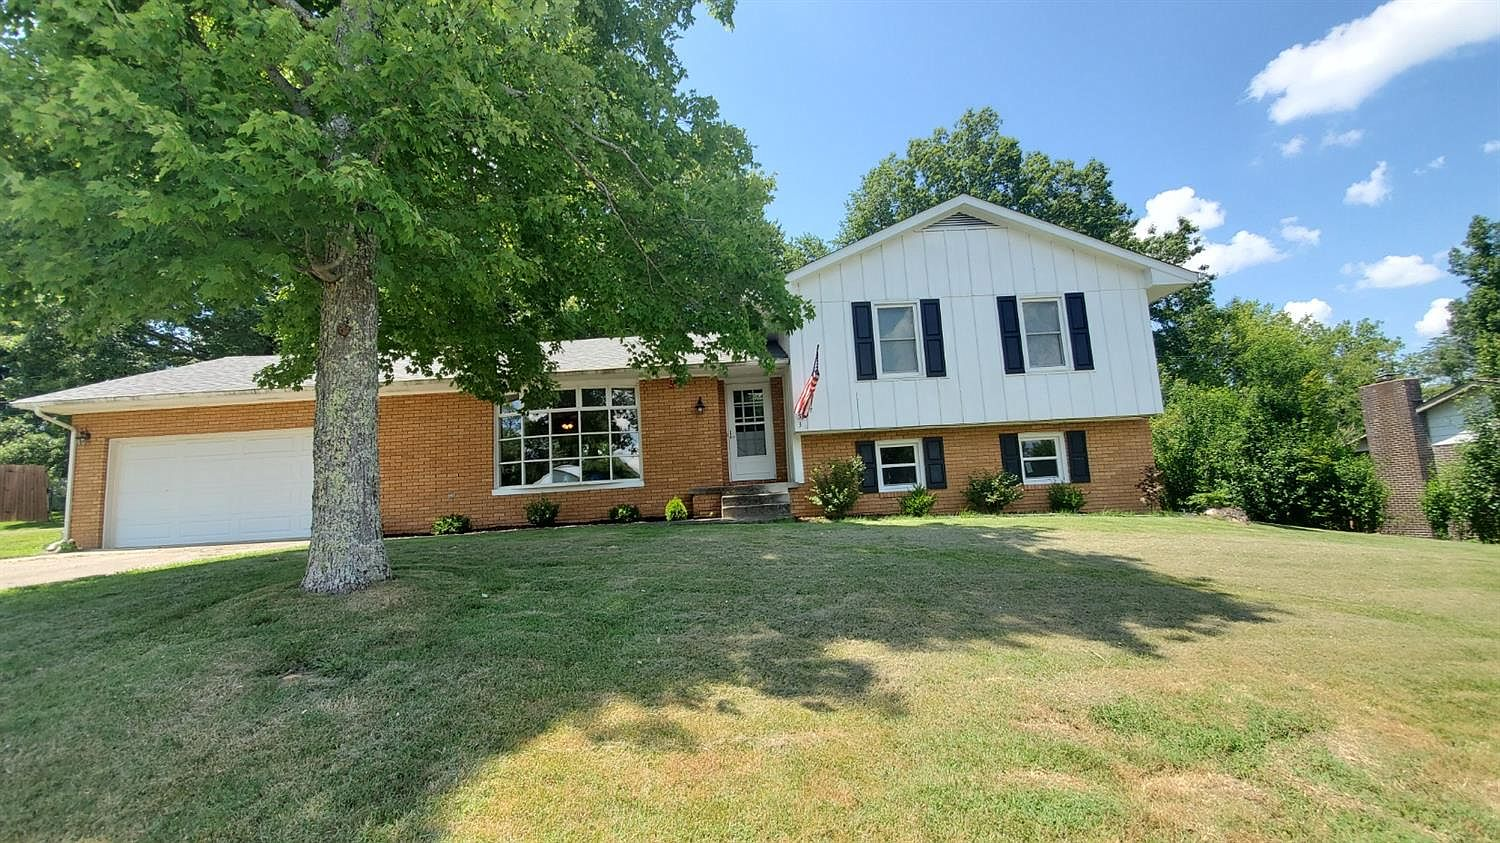 253 Circle Dr Morehead Ky 40351 Zillow